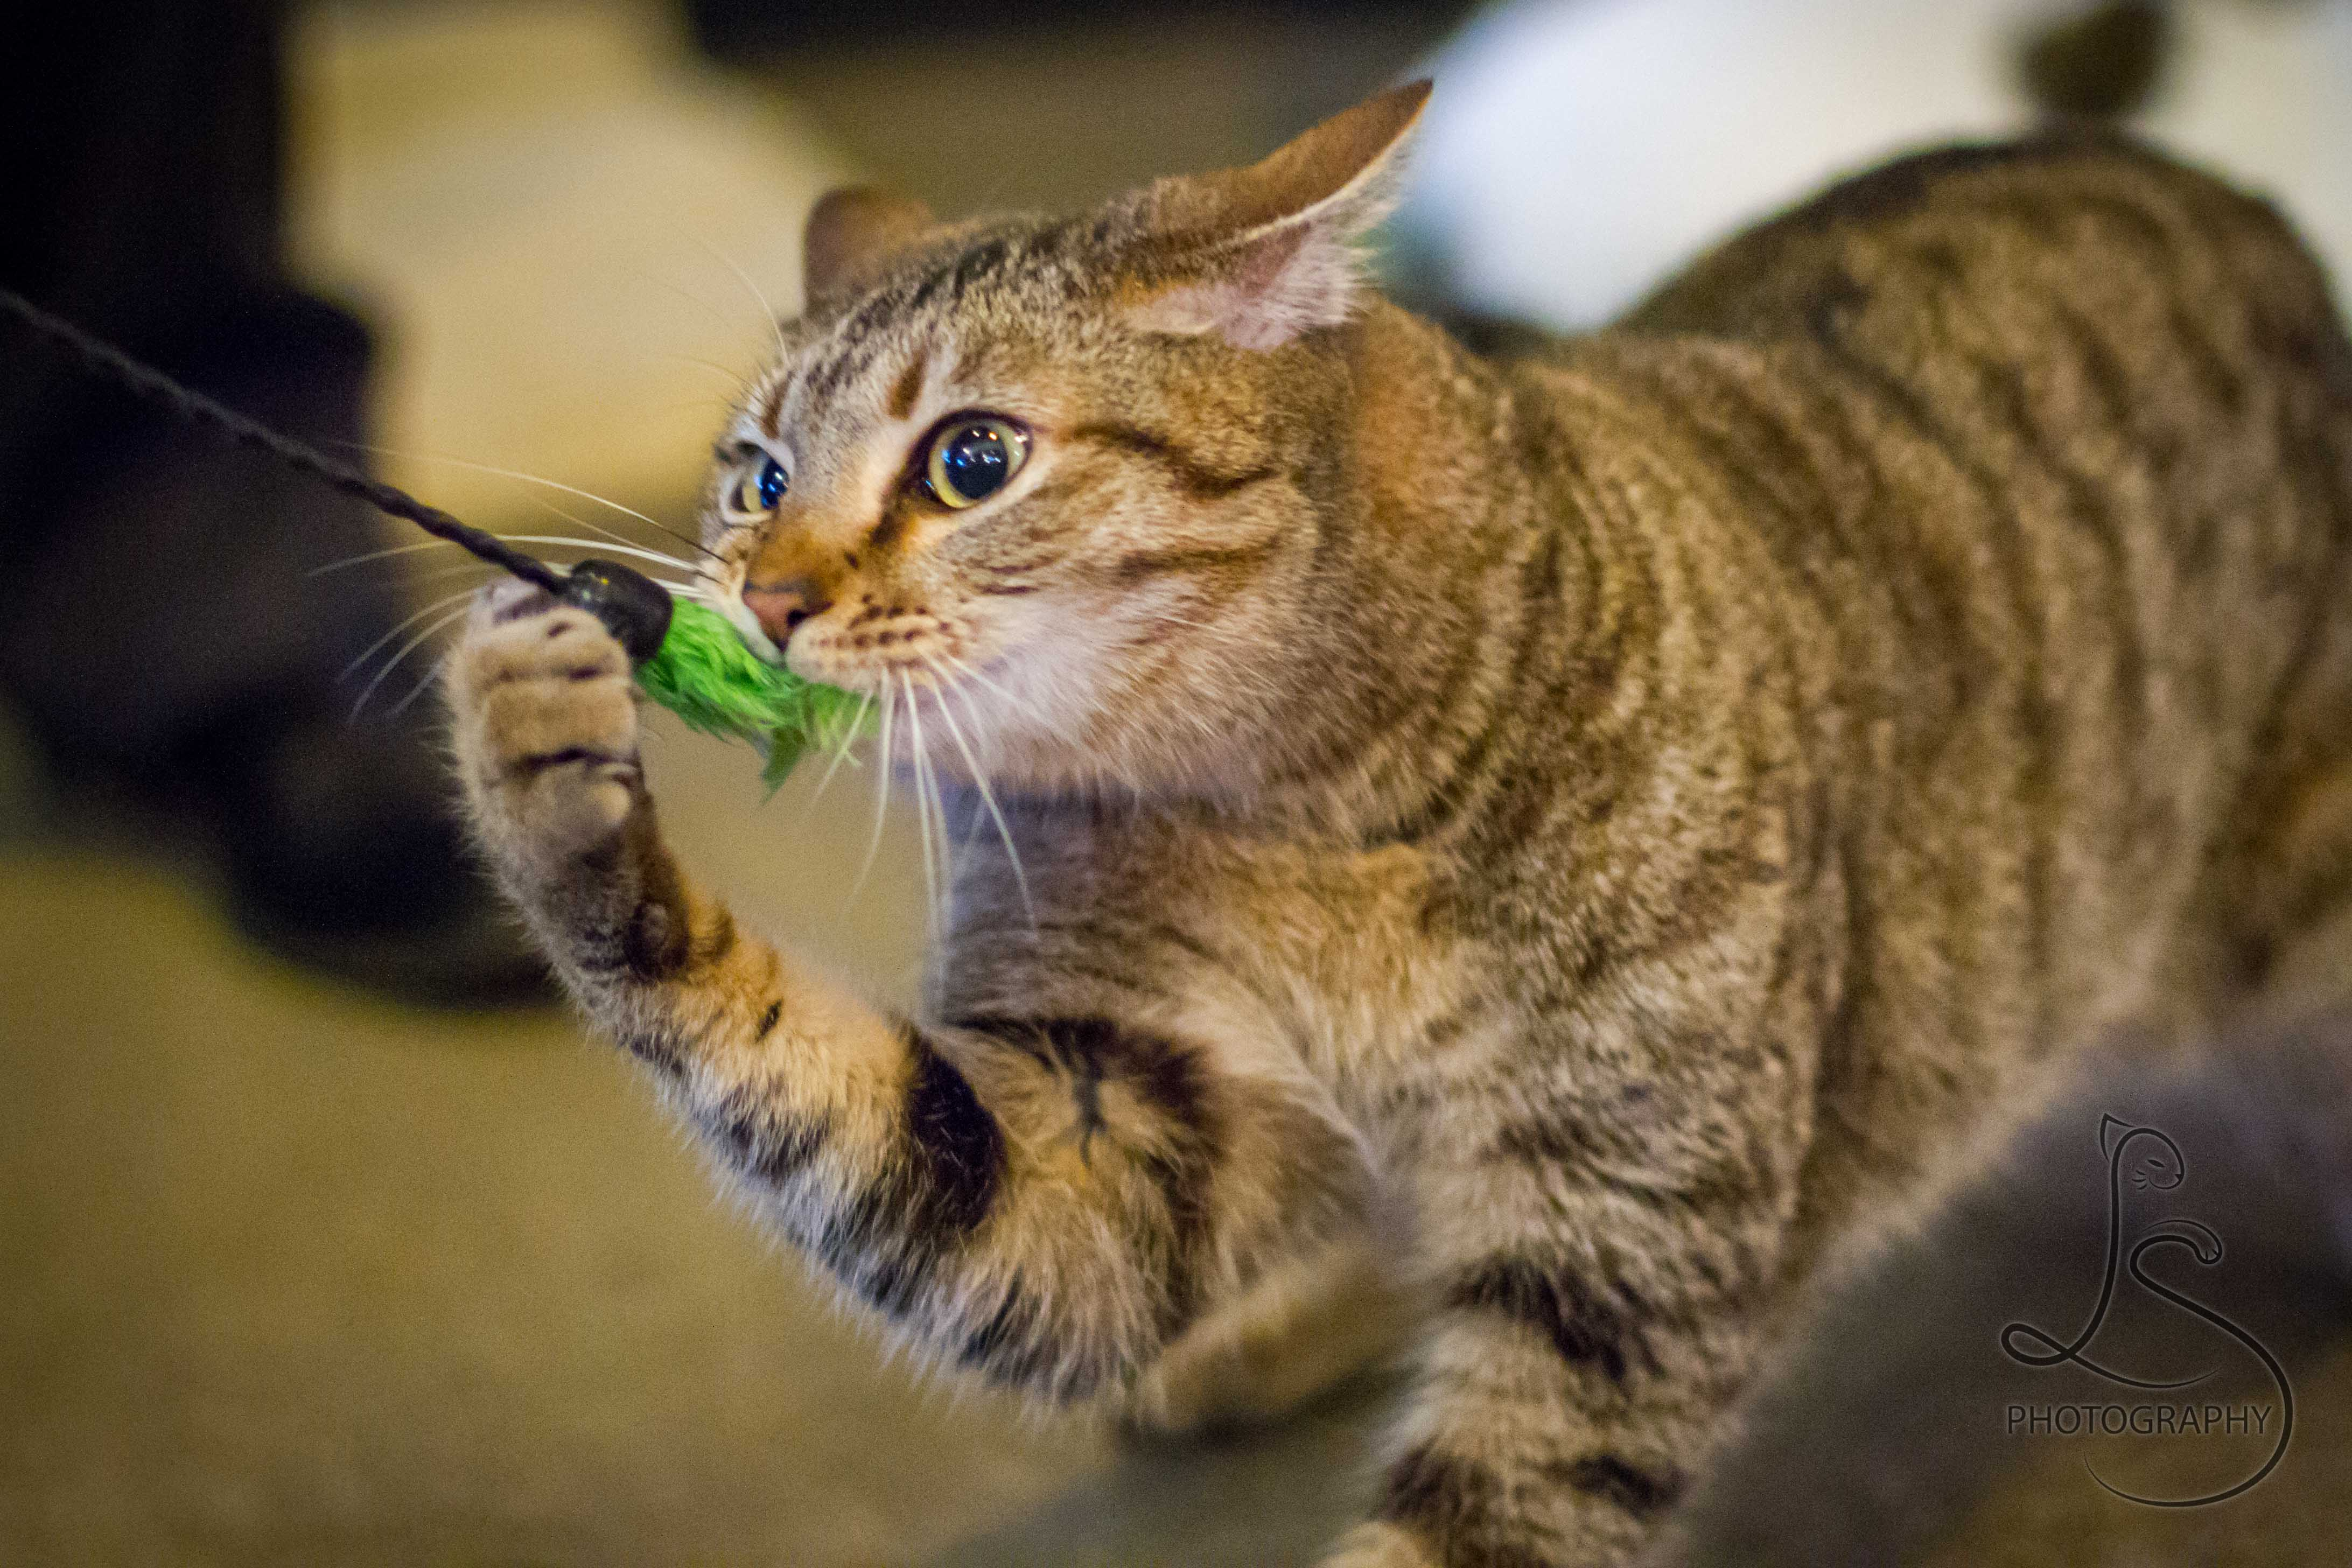 © LotsaSmiles Photography 2012